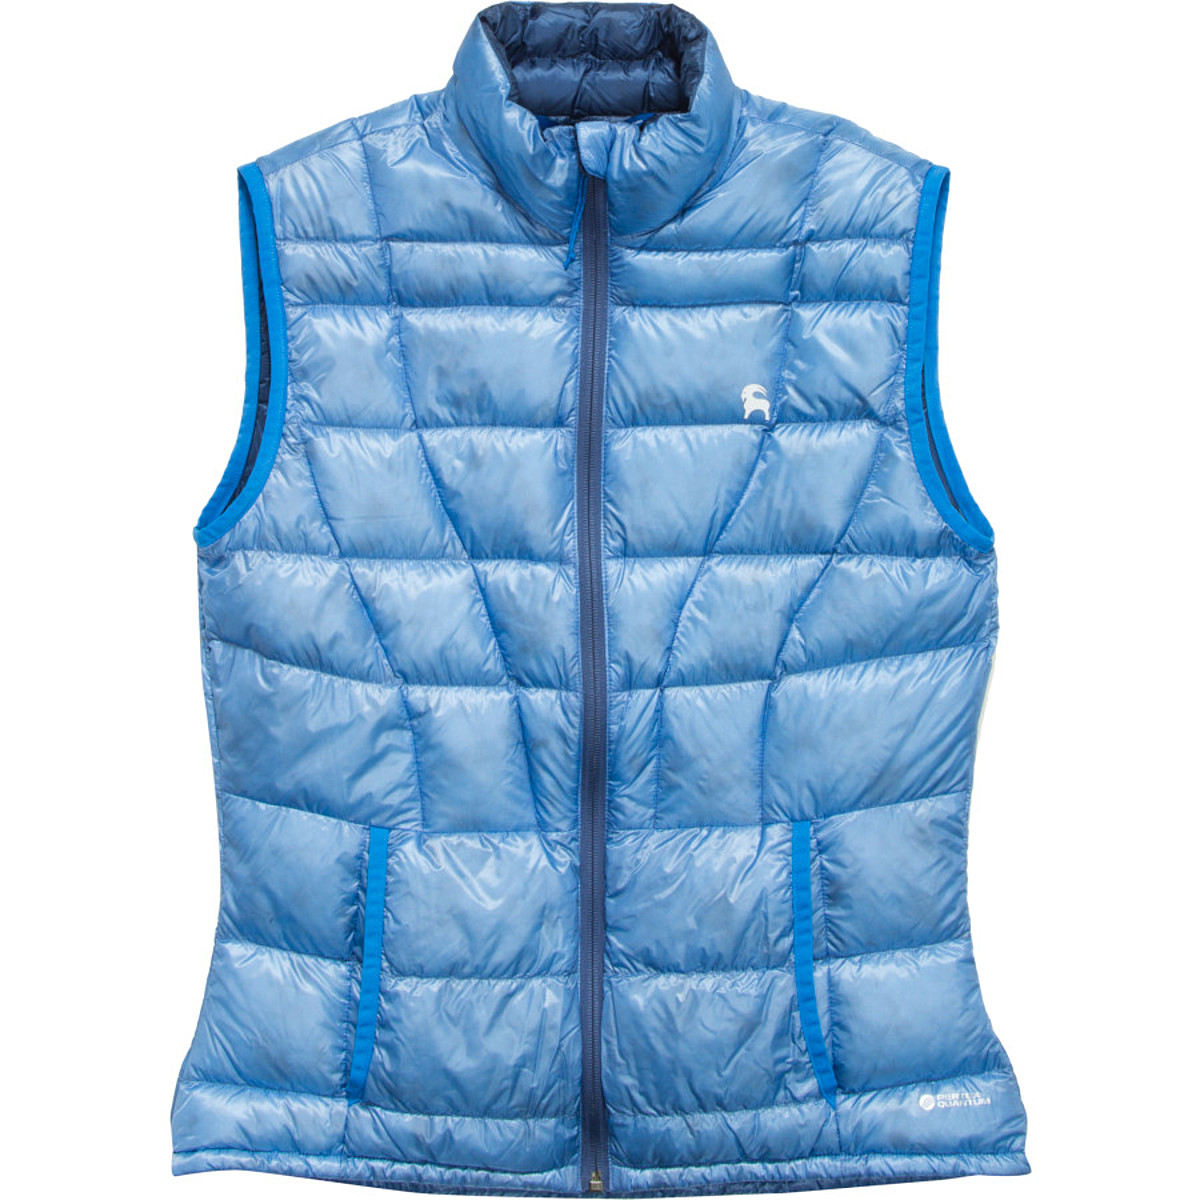 Backcountry.com Wayfarer Down Vest